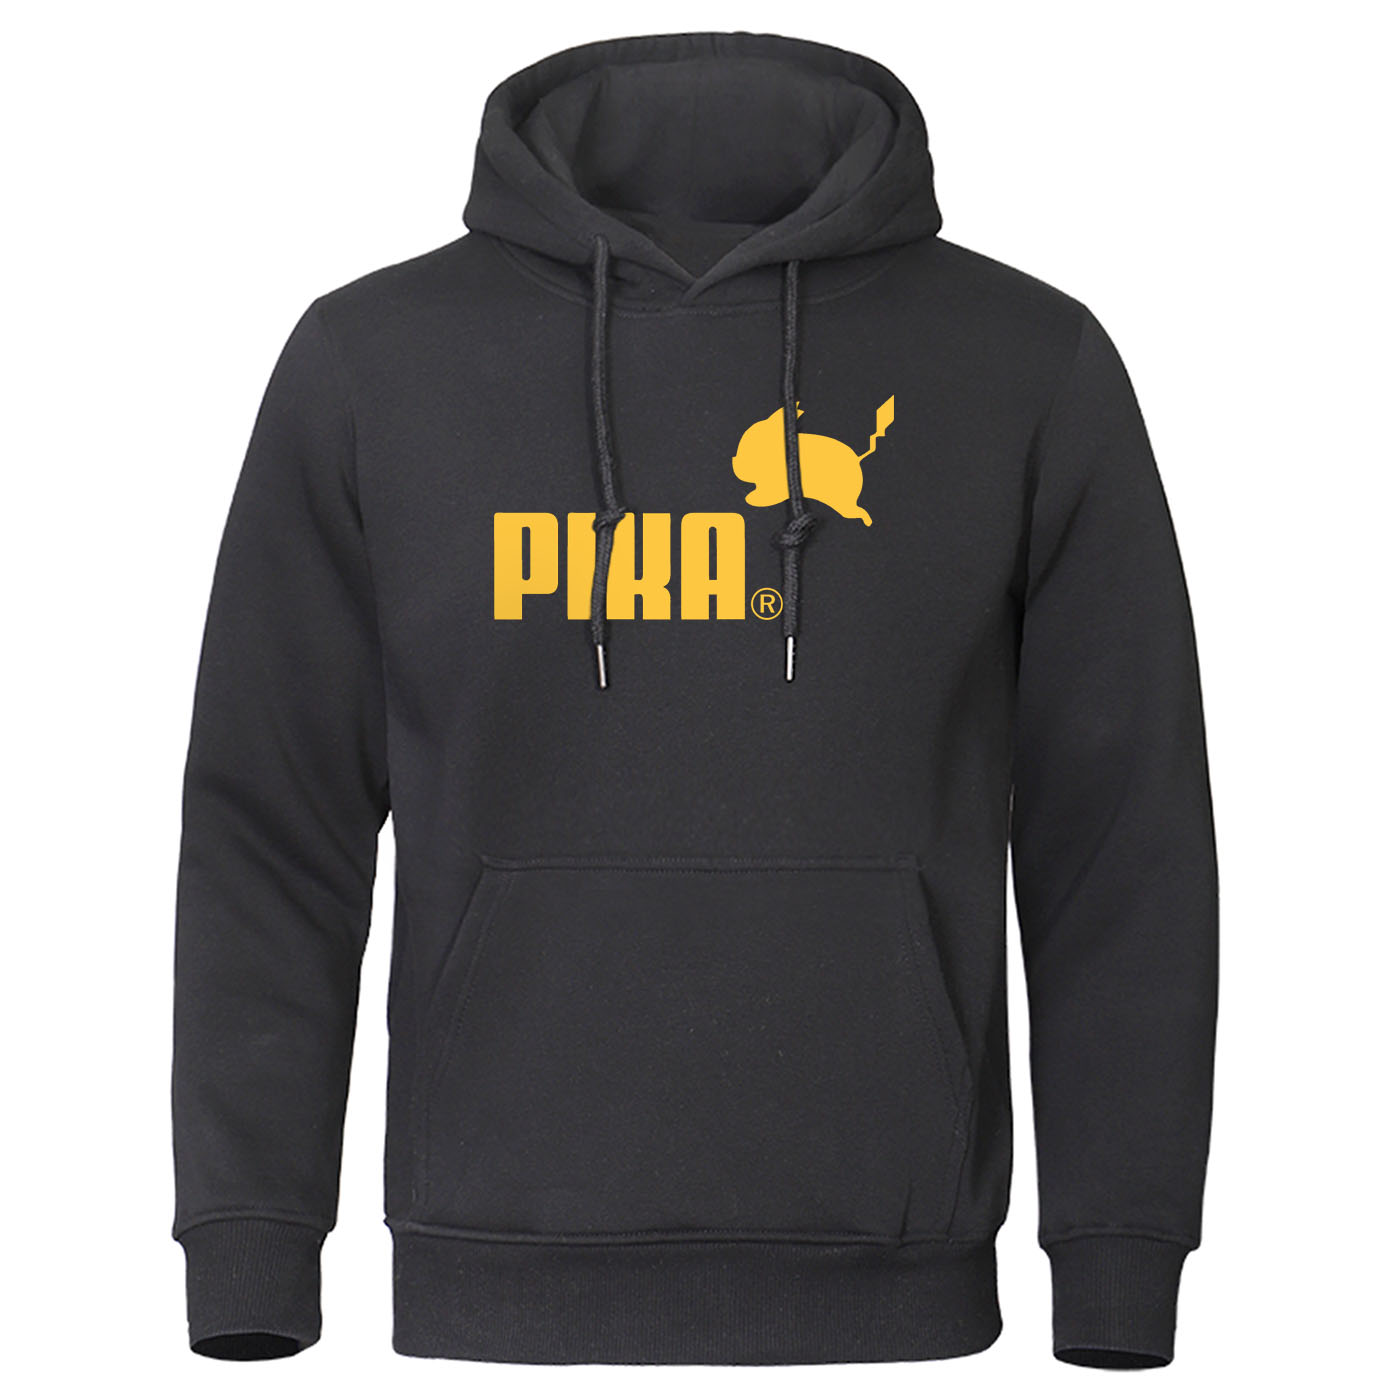 2019 Autumn Pika Hoodies Japanese Anime Pokemon Men Pullover Pikachu Boy Sweatshirt Fleece Warm Men's Casual Streetwear Hoody